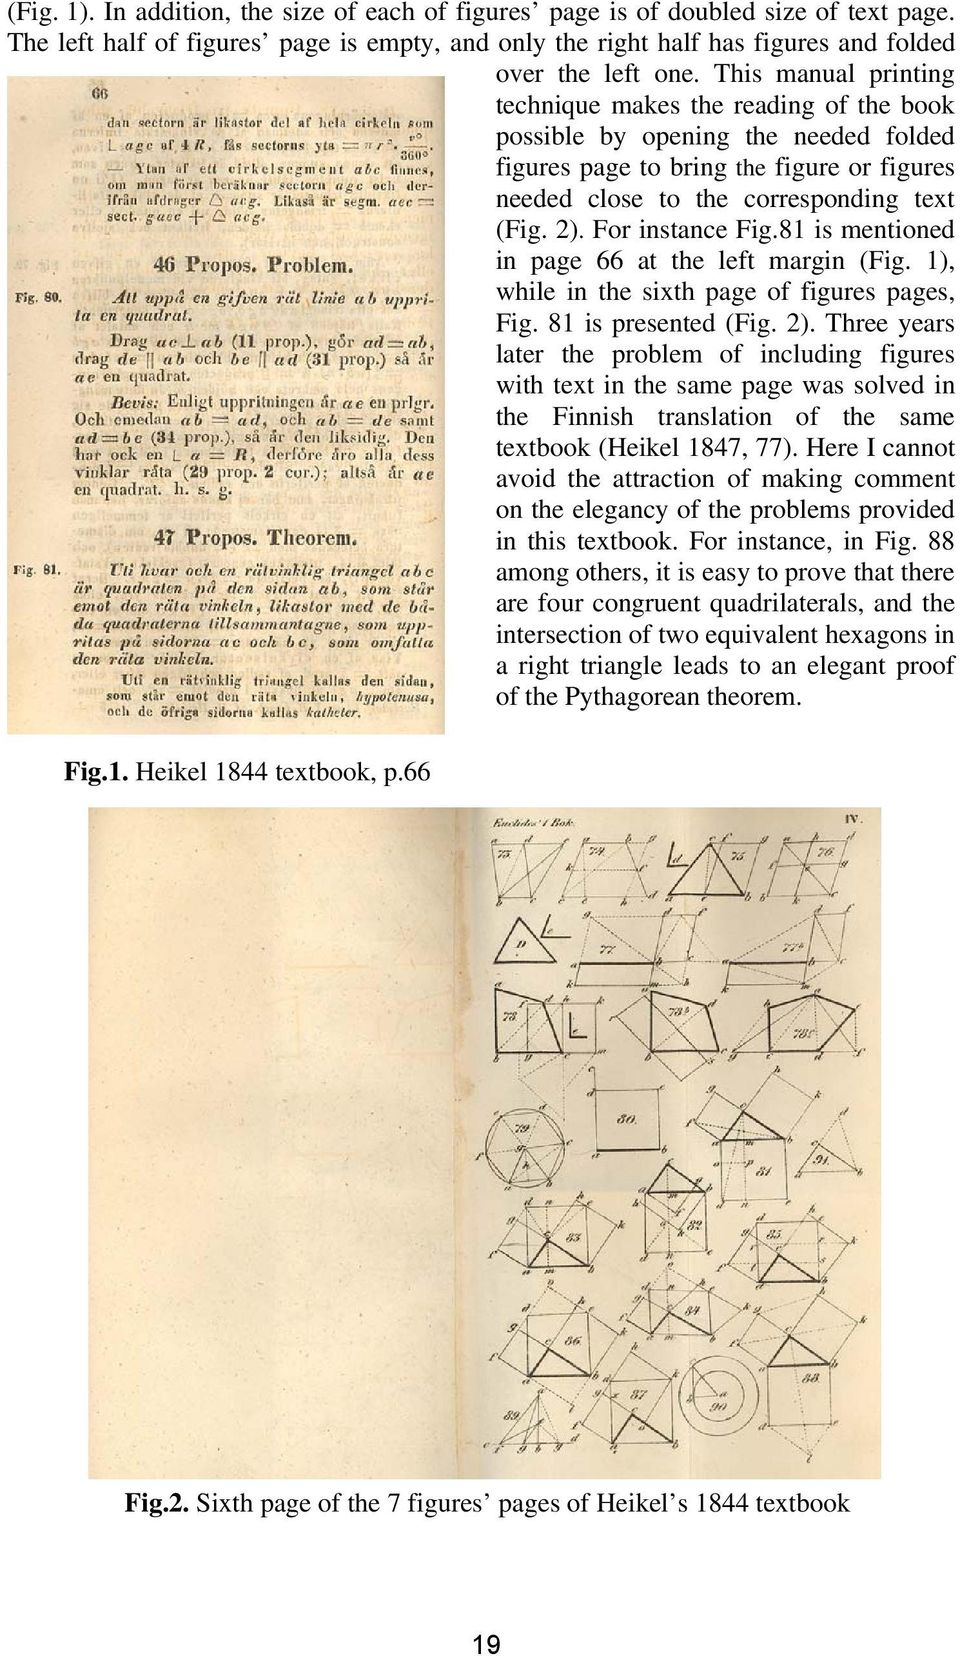 For instance Fig.81 is mentioned in page 66 at the left margin (Fig. 1), while in the sixth page of figures pages, Fig. 81 is presented (Fig. 2).